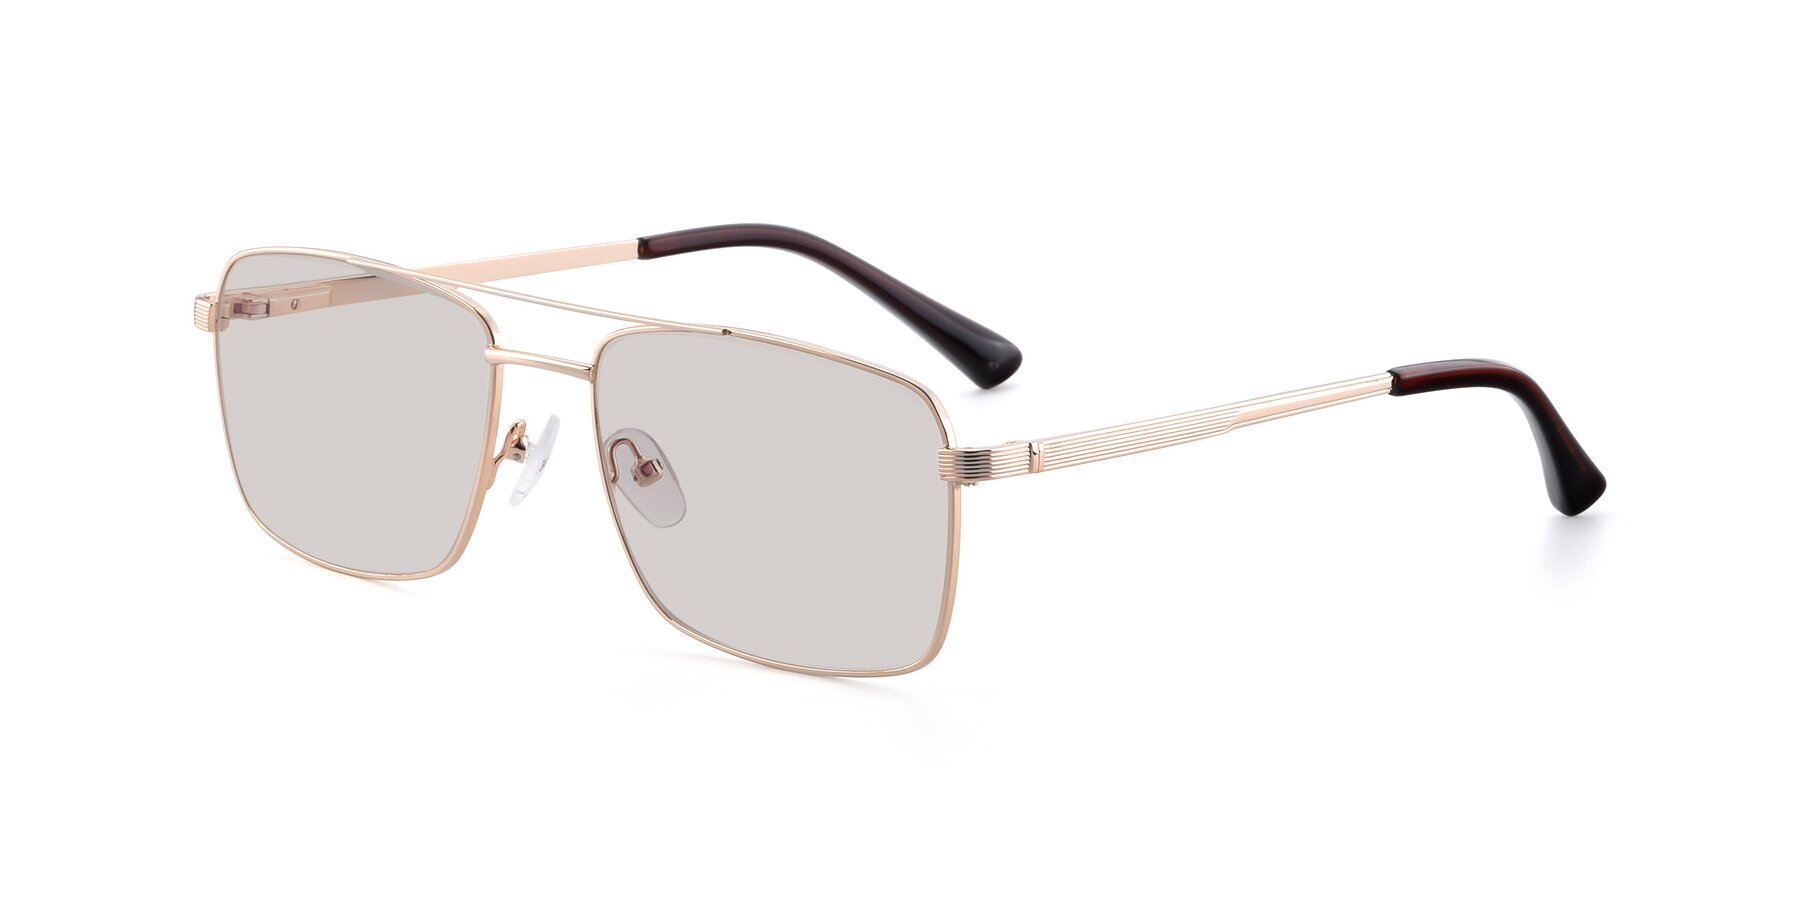 Angle of 9469 in Gold with Light Brown Tinted Lenses